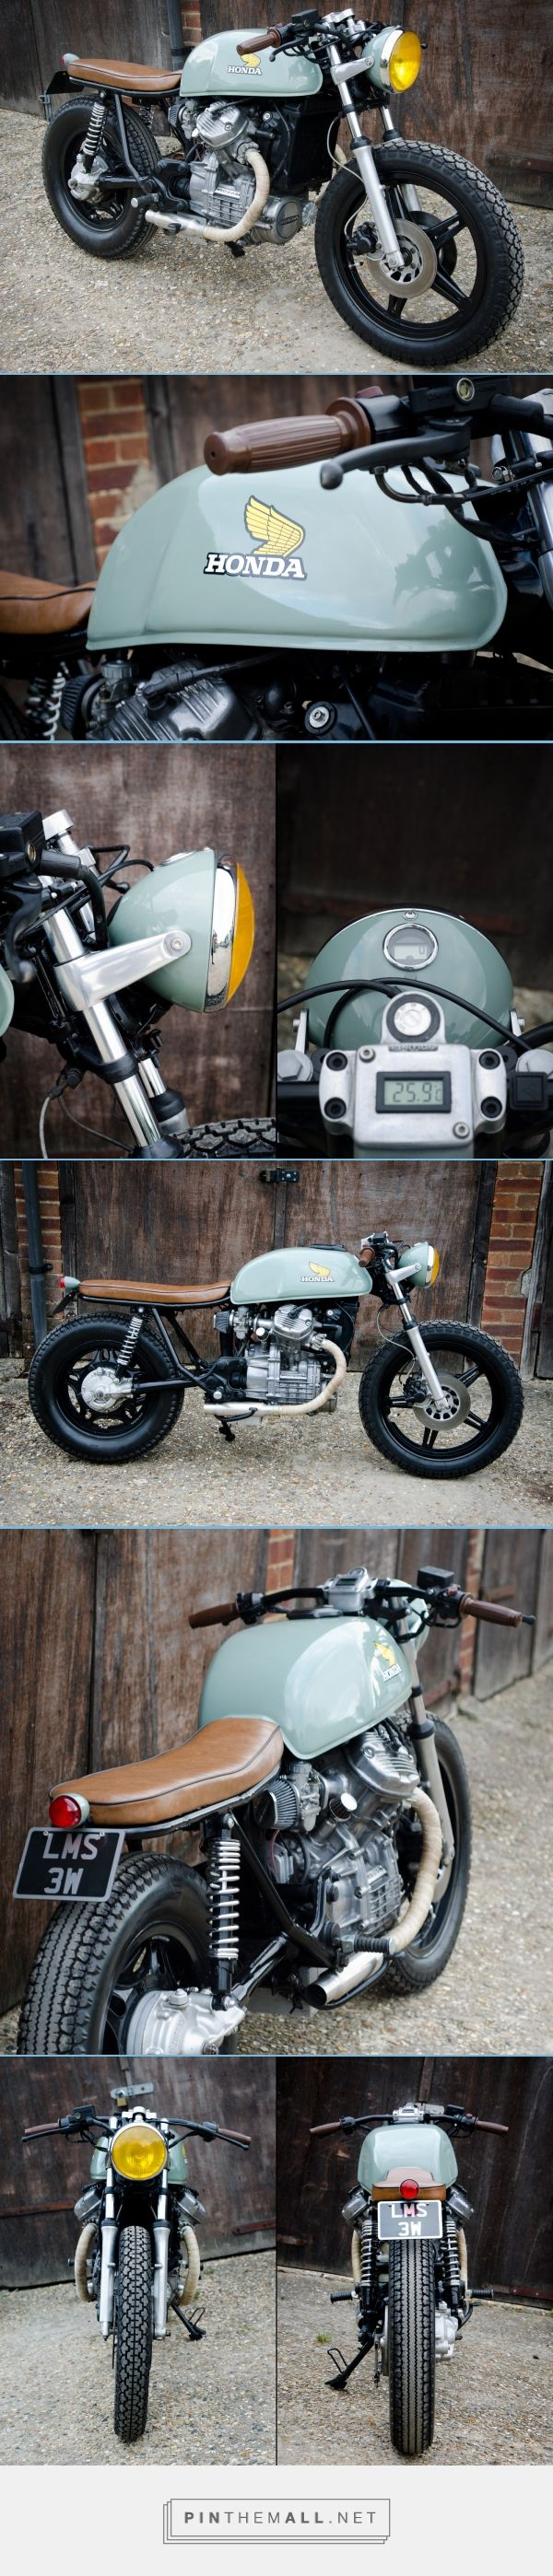 Yard Built Honda CX500 by Richard (London) [CFCM]